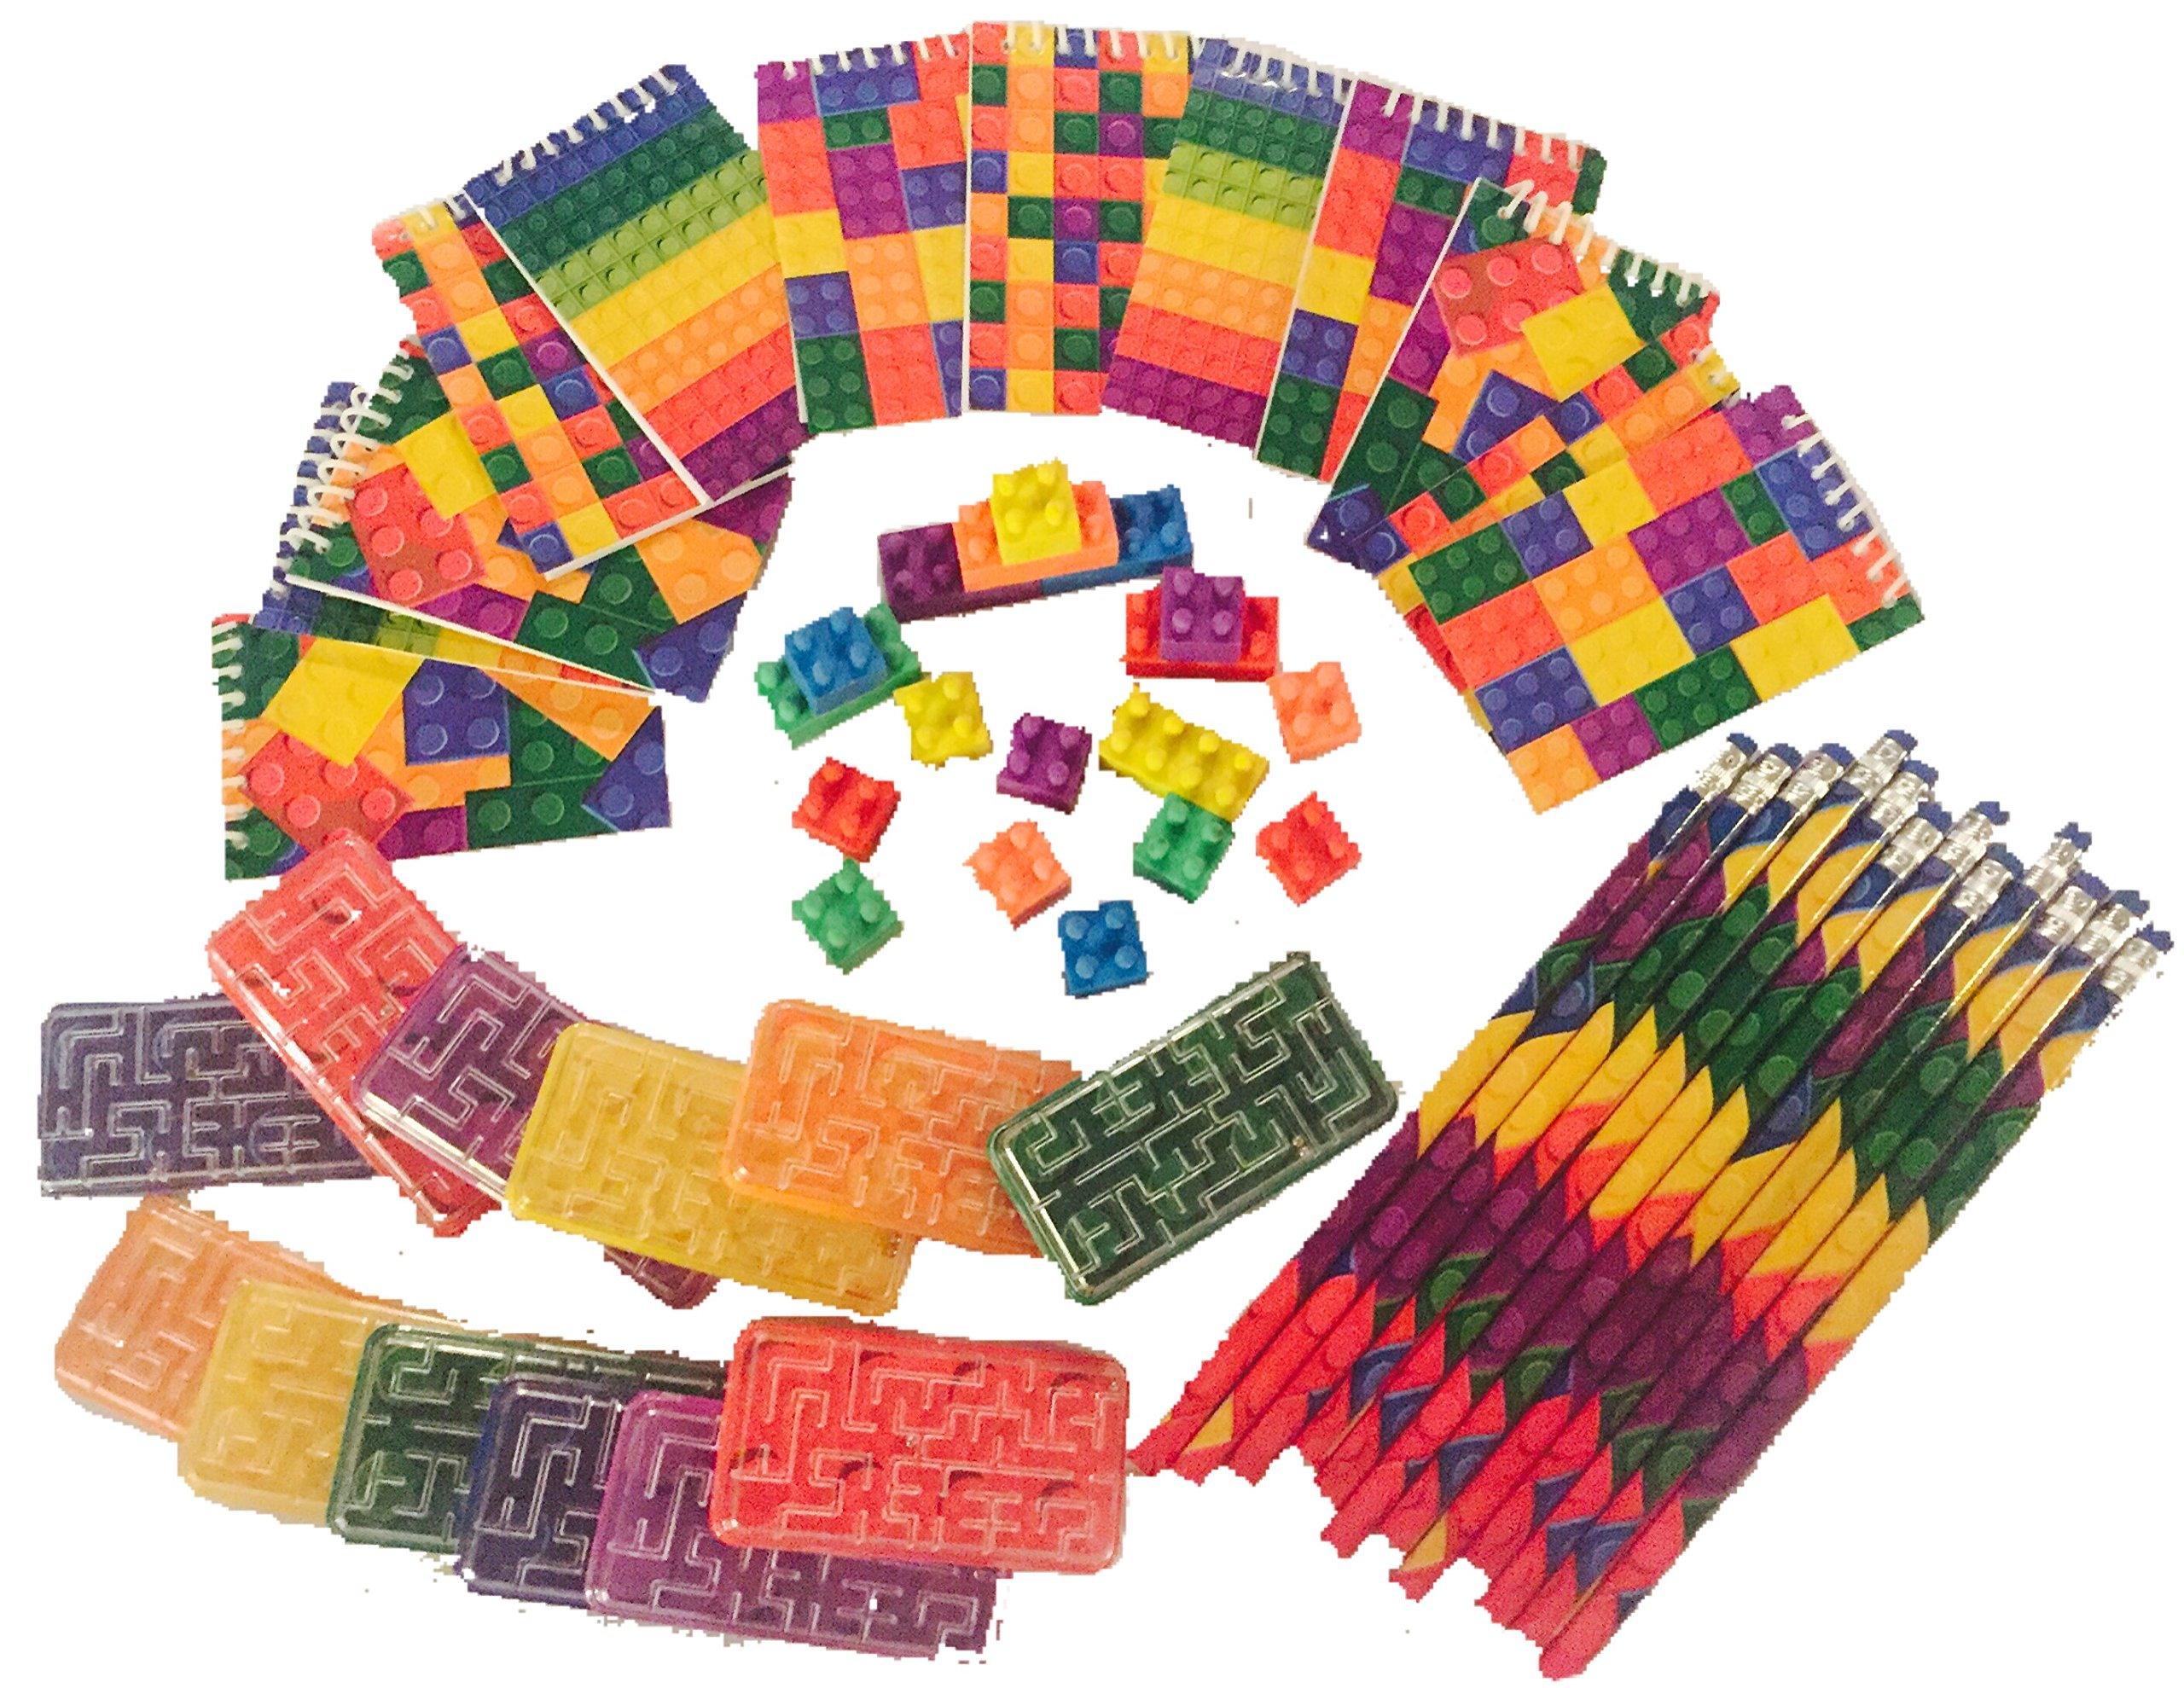 Brick Building Blocks Party Favor Novelty Toys Set - Block Pencils, Mini Note Pads, Erasers, Ball Mazes, Bags. 60 Piece Bundle for Children Lego Birthdays, Goody Bags, School Prize Boxes, Halloween